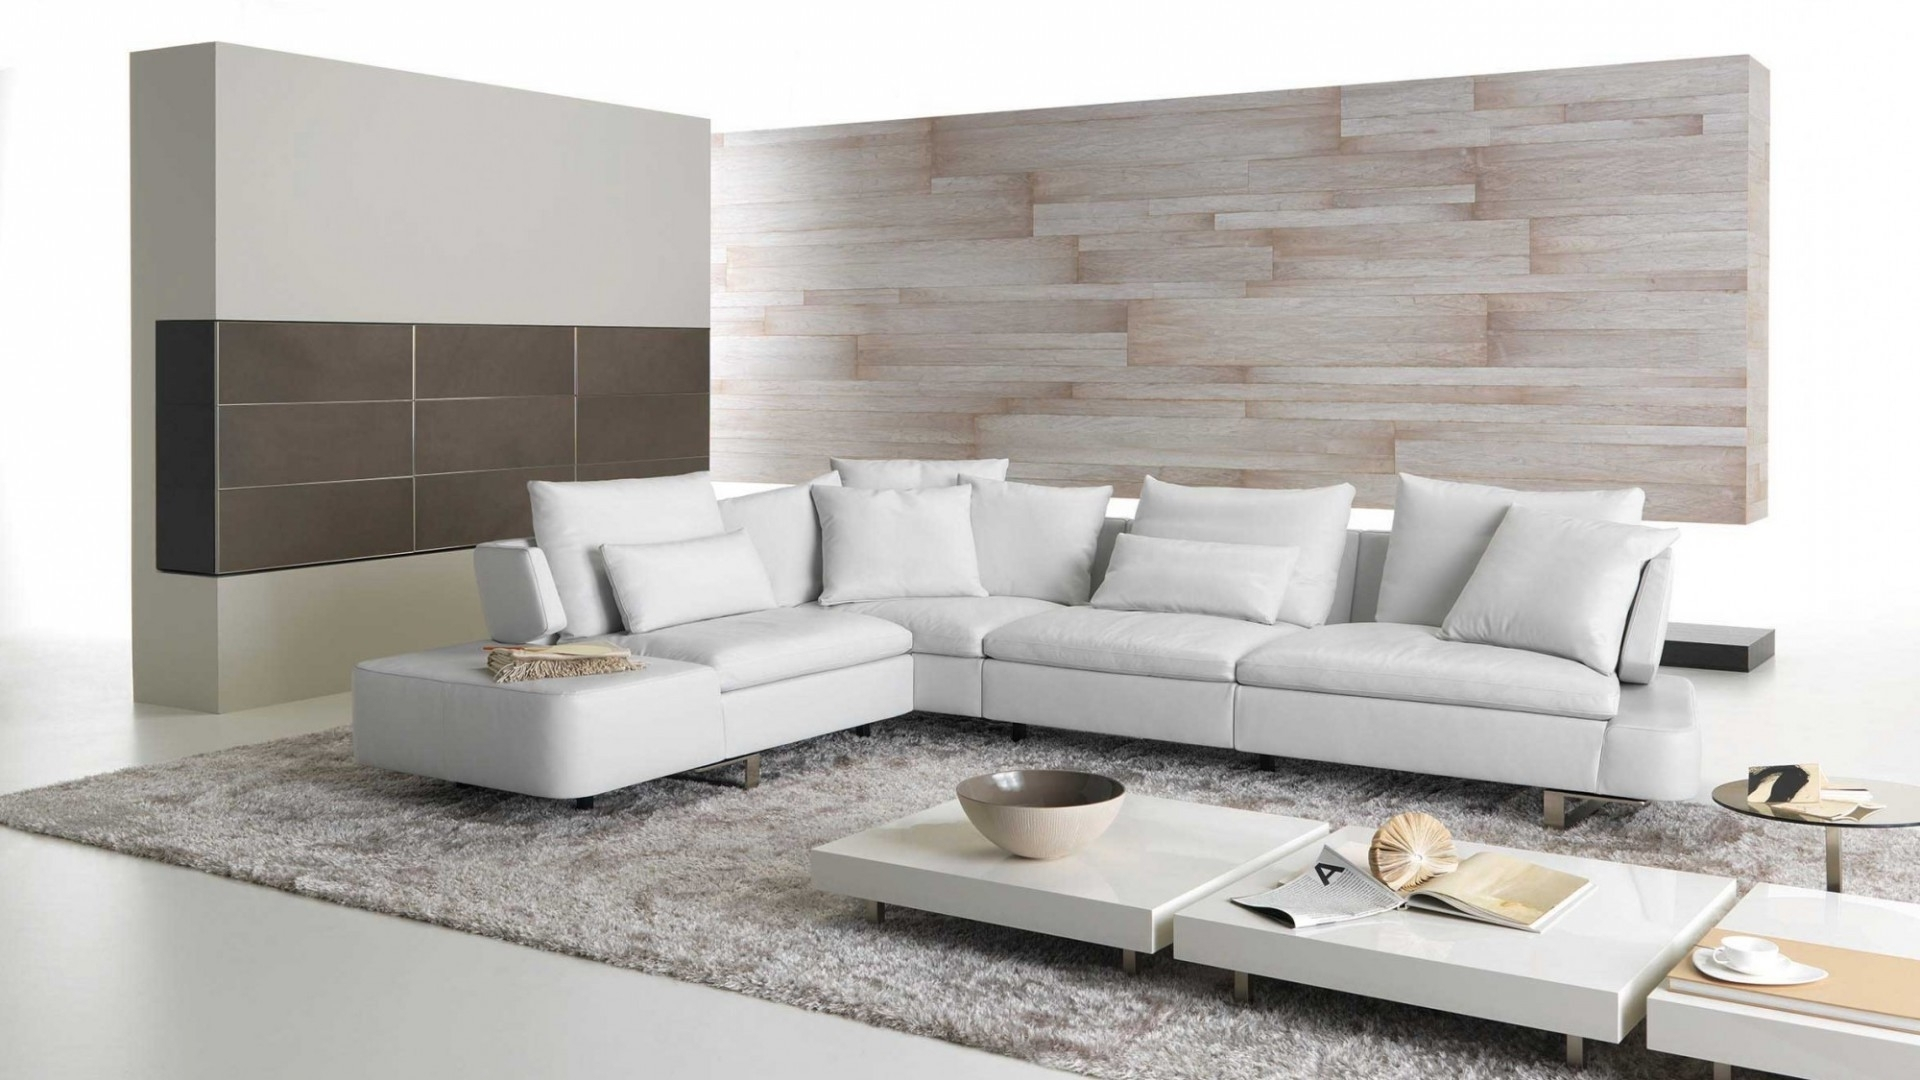 Trendy Elegant Natuzzi Sectional Sofa (32 Photos) (View 14 of 15)